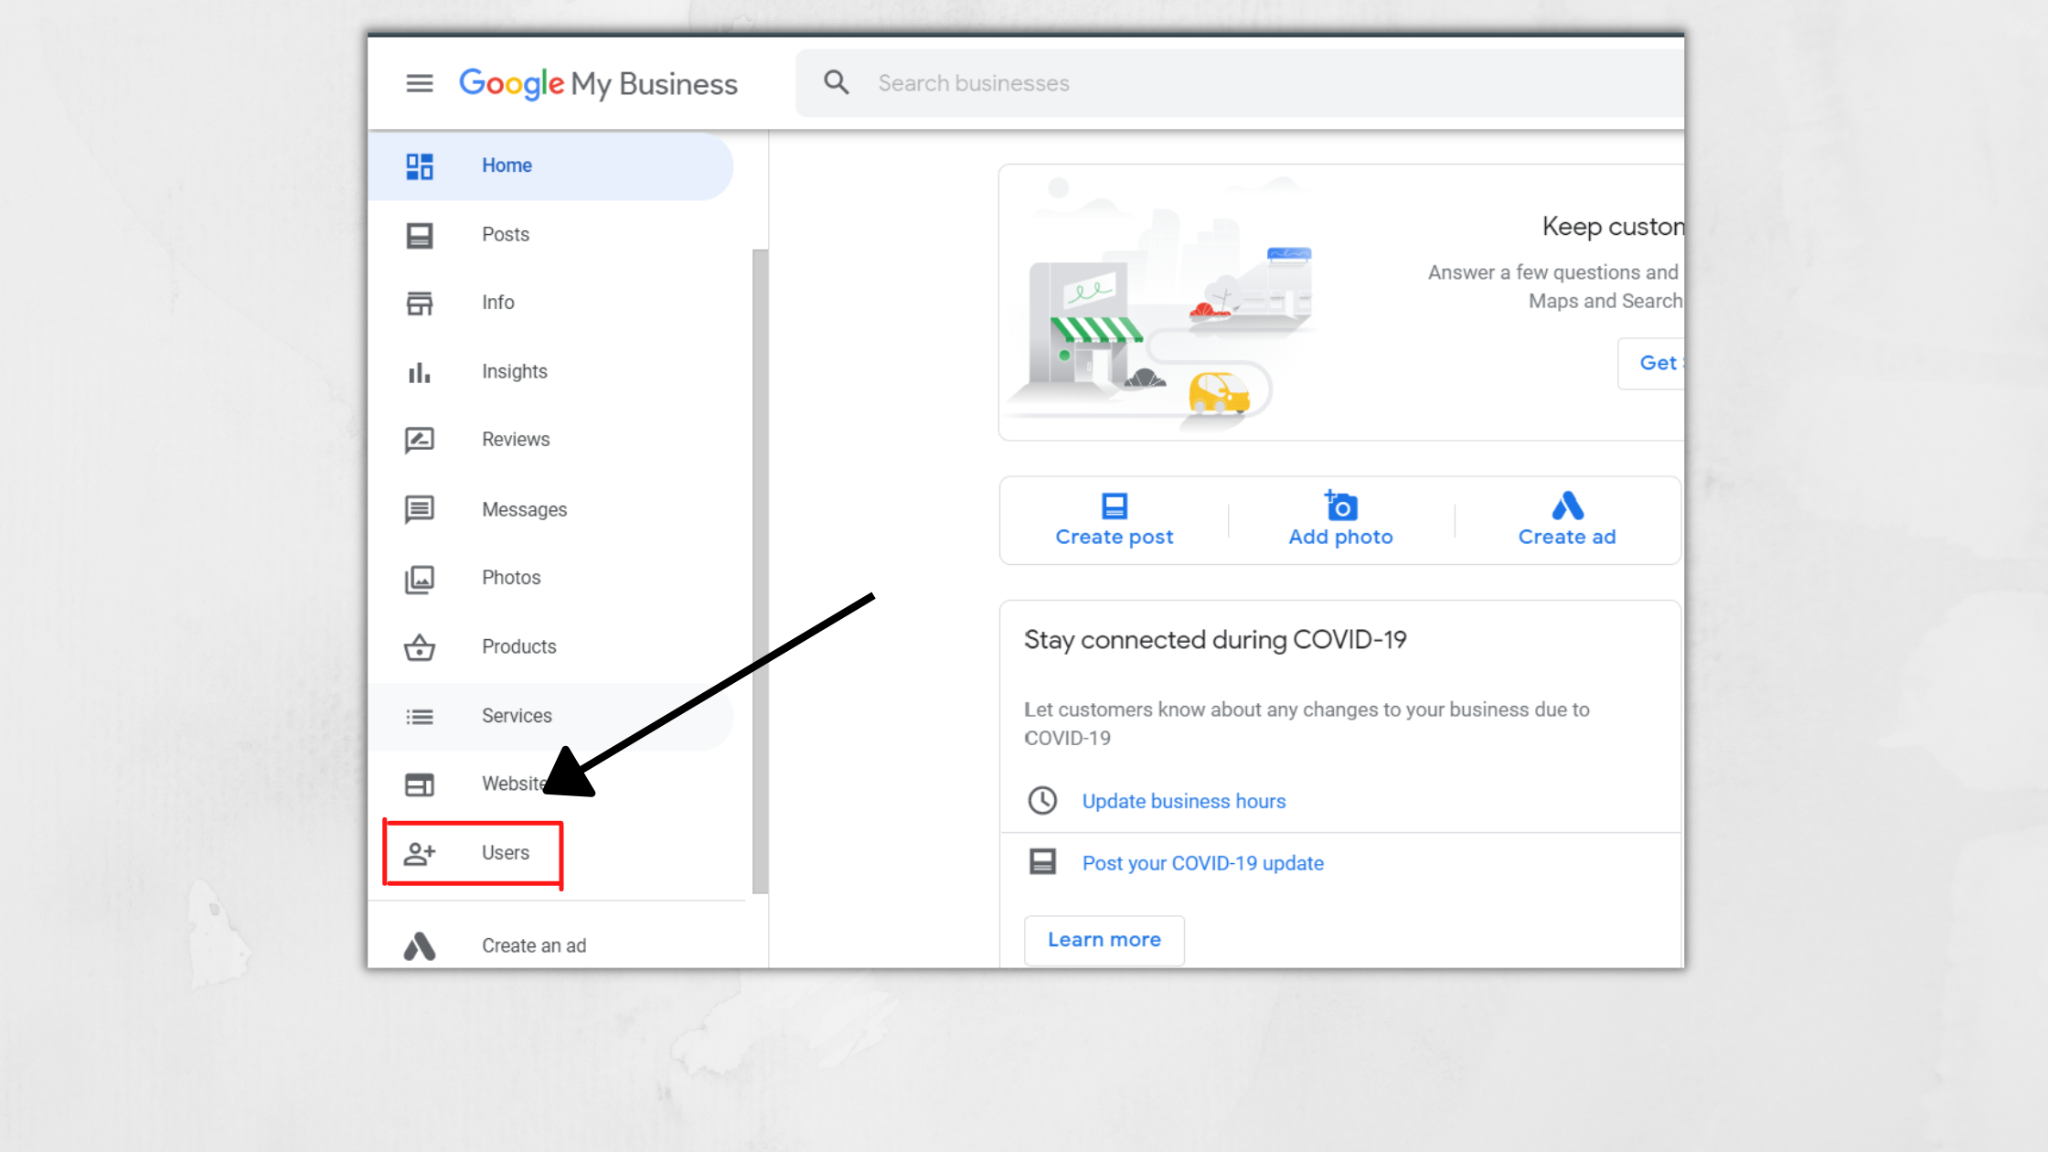 selecting user section to add owner in the google my business